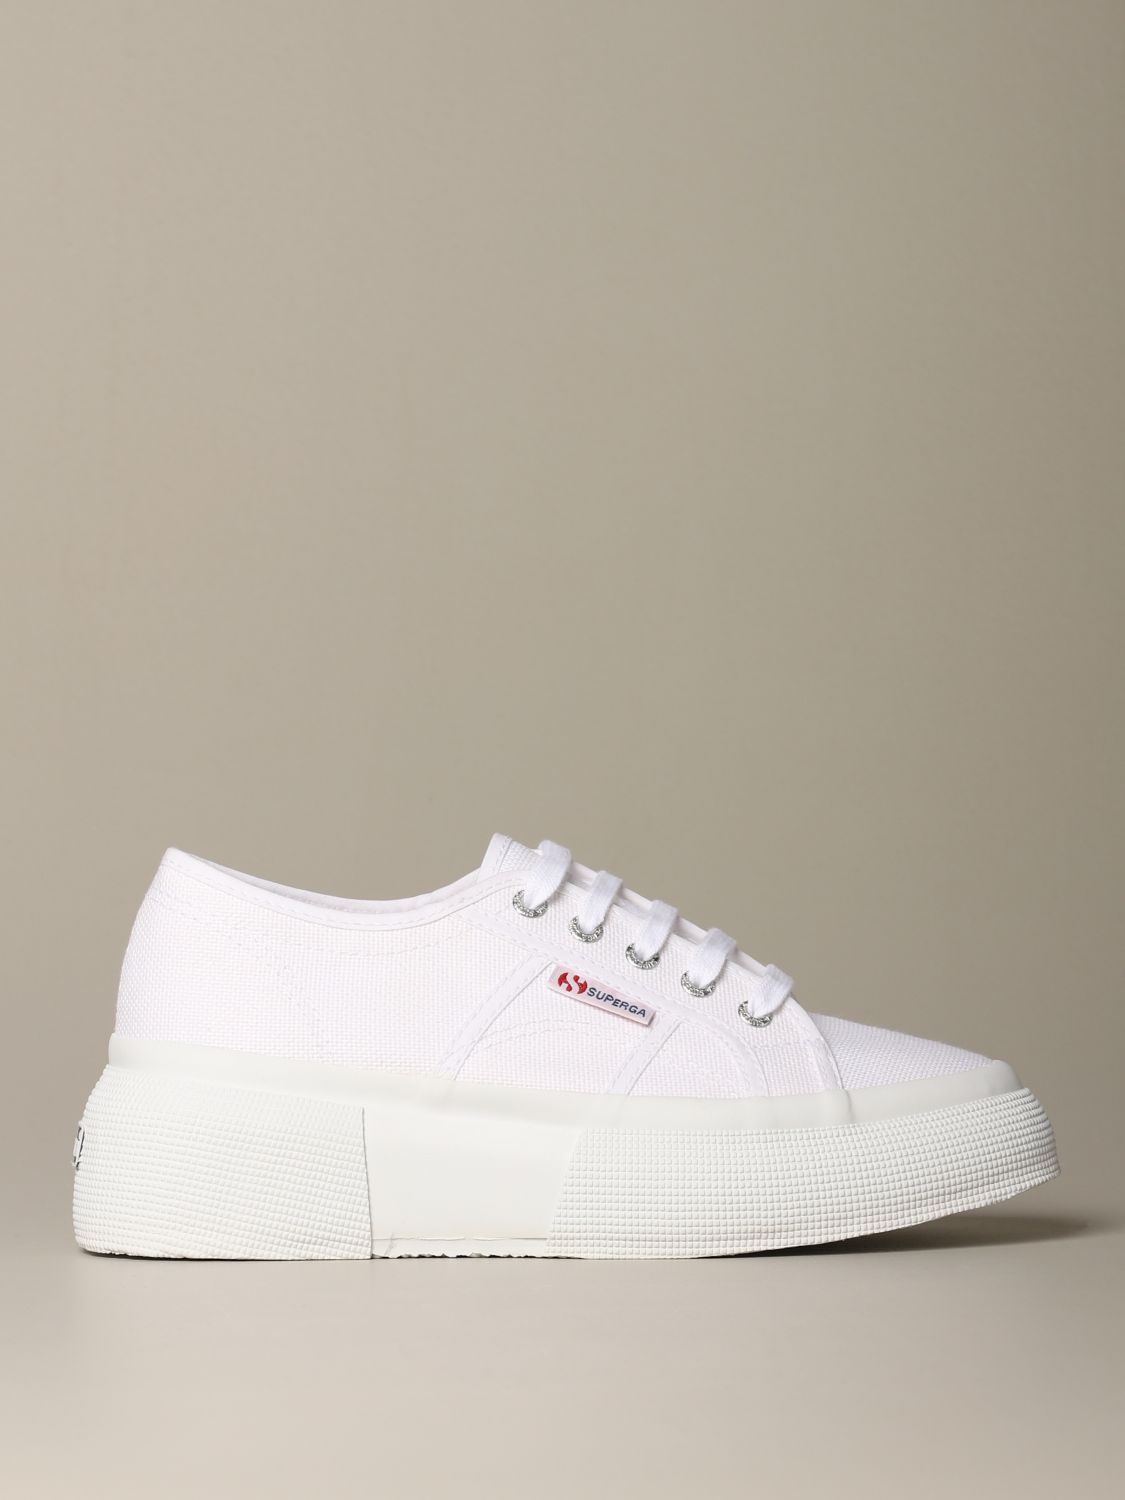 Sneakers Superga: Shoes women Superga white 1